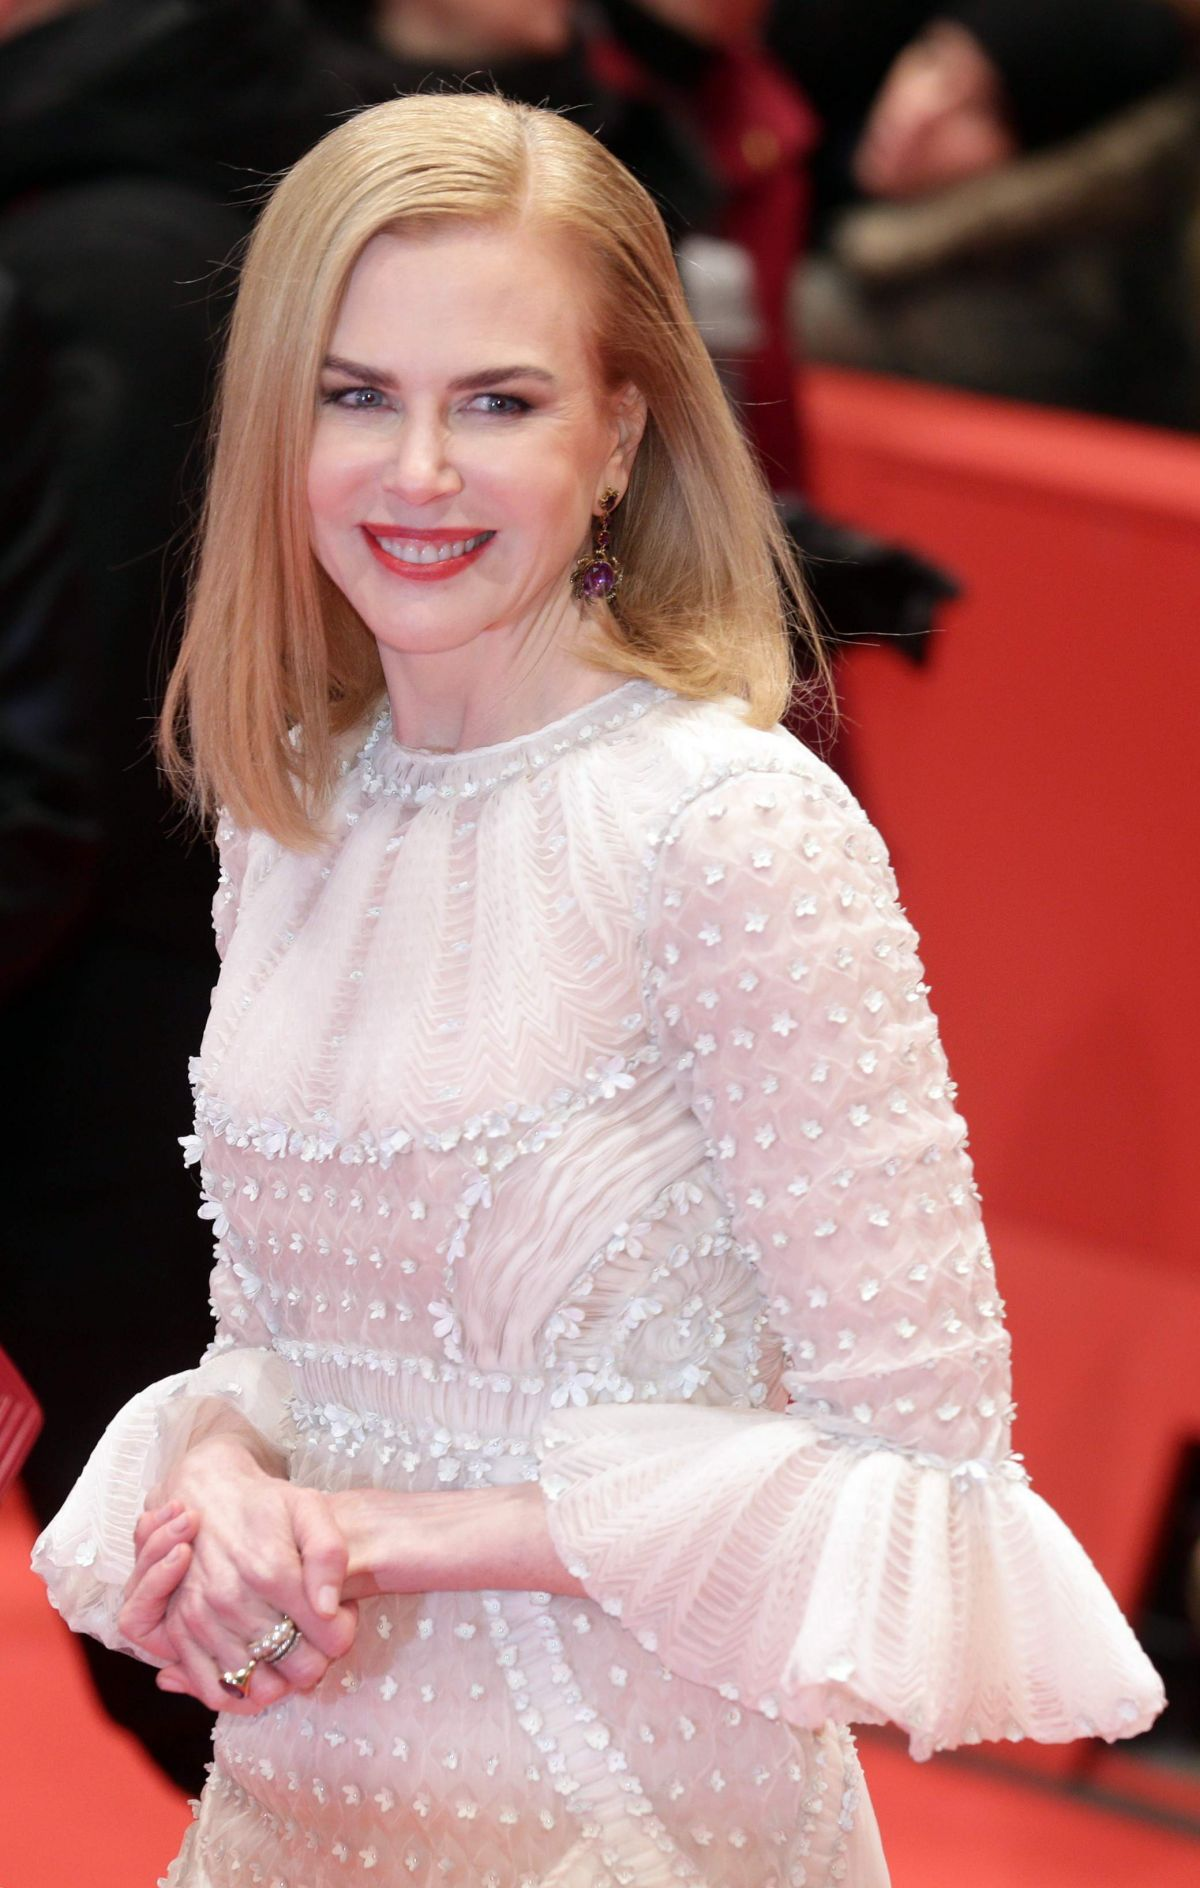 NICOLE KIDMAN at Queen of the Desert Premiere at 65th Berlinale International Film Festival